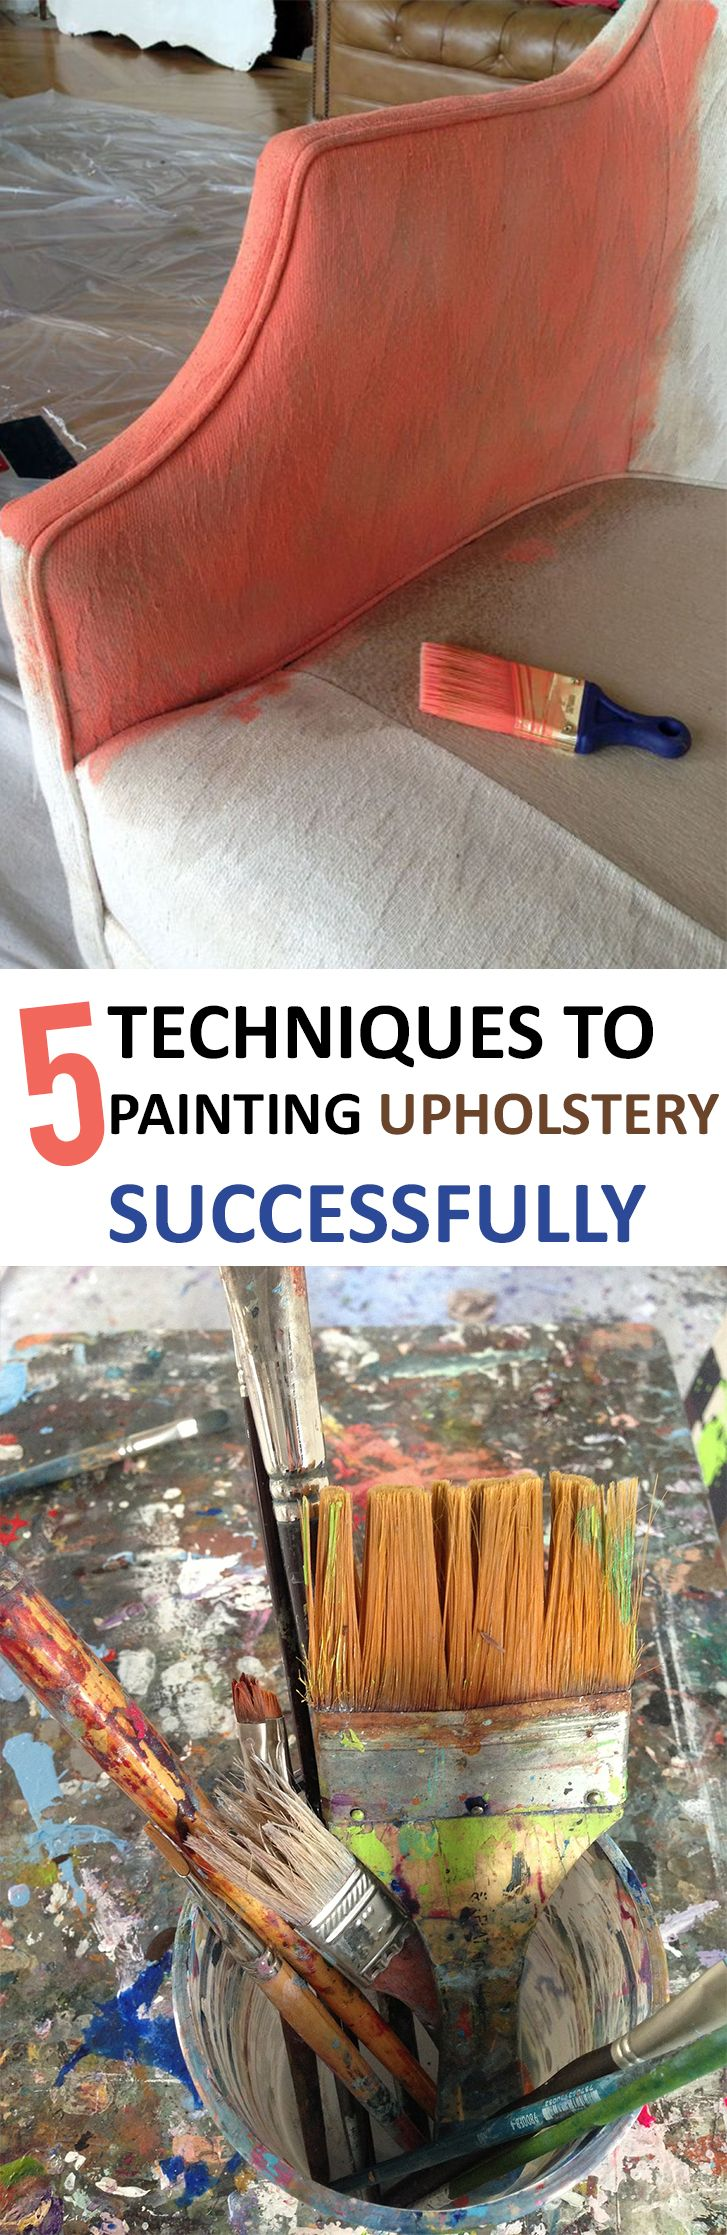 Awesome ways to paint upholstery, and they're easy!